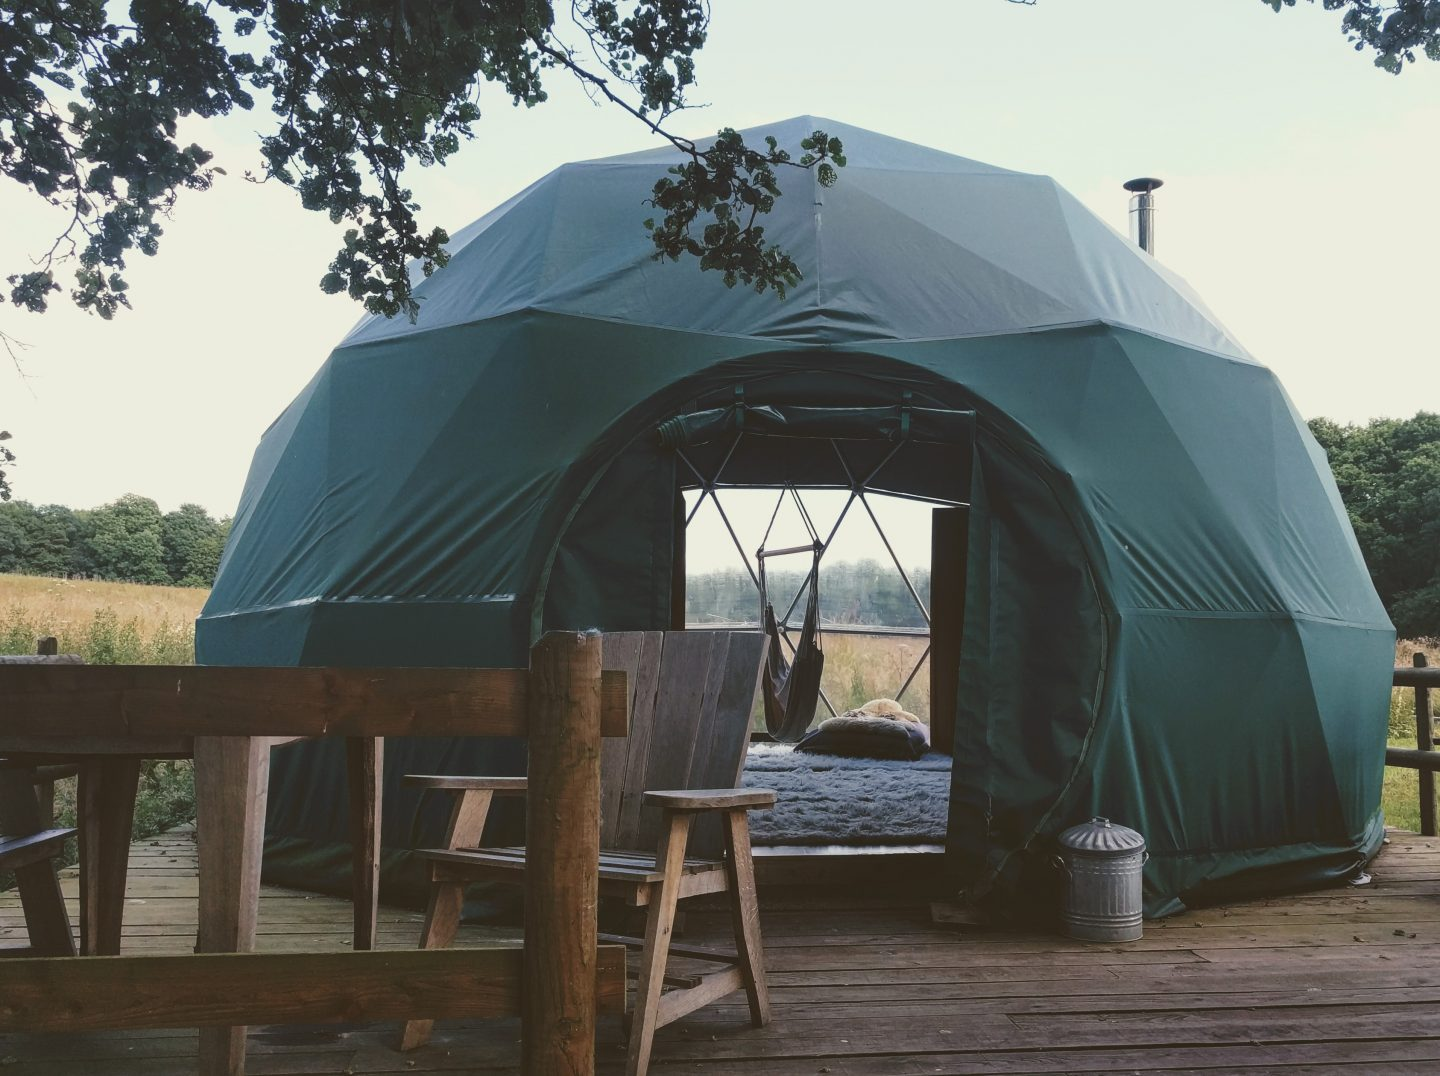 Best Ever Glamping Trip